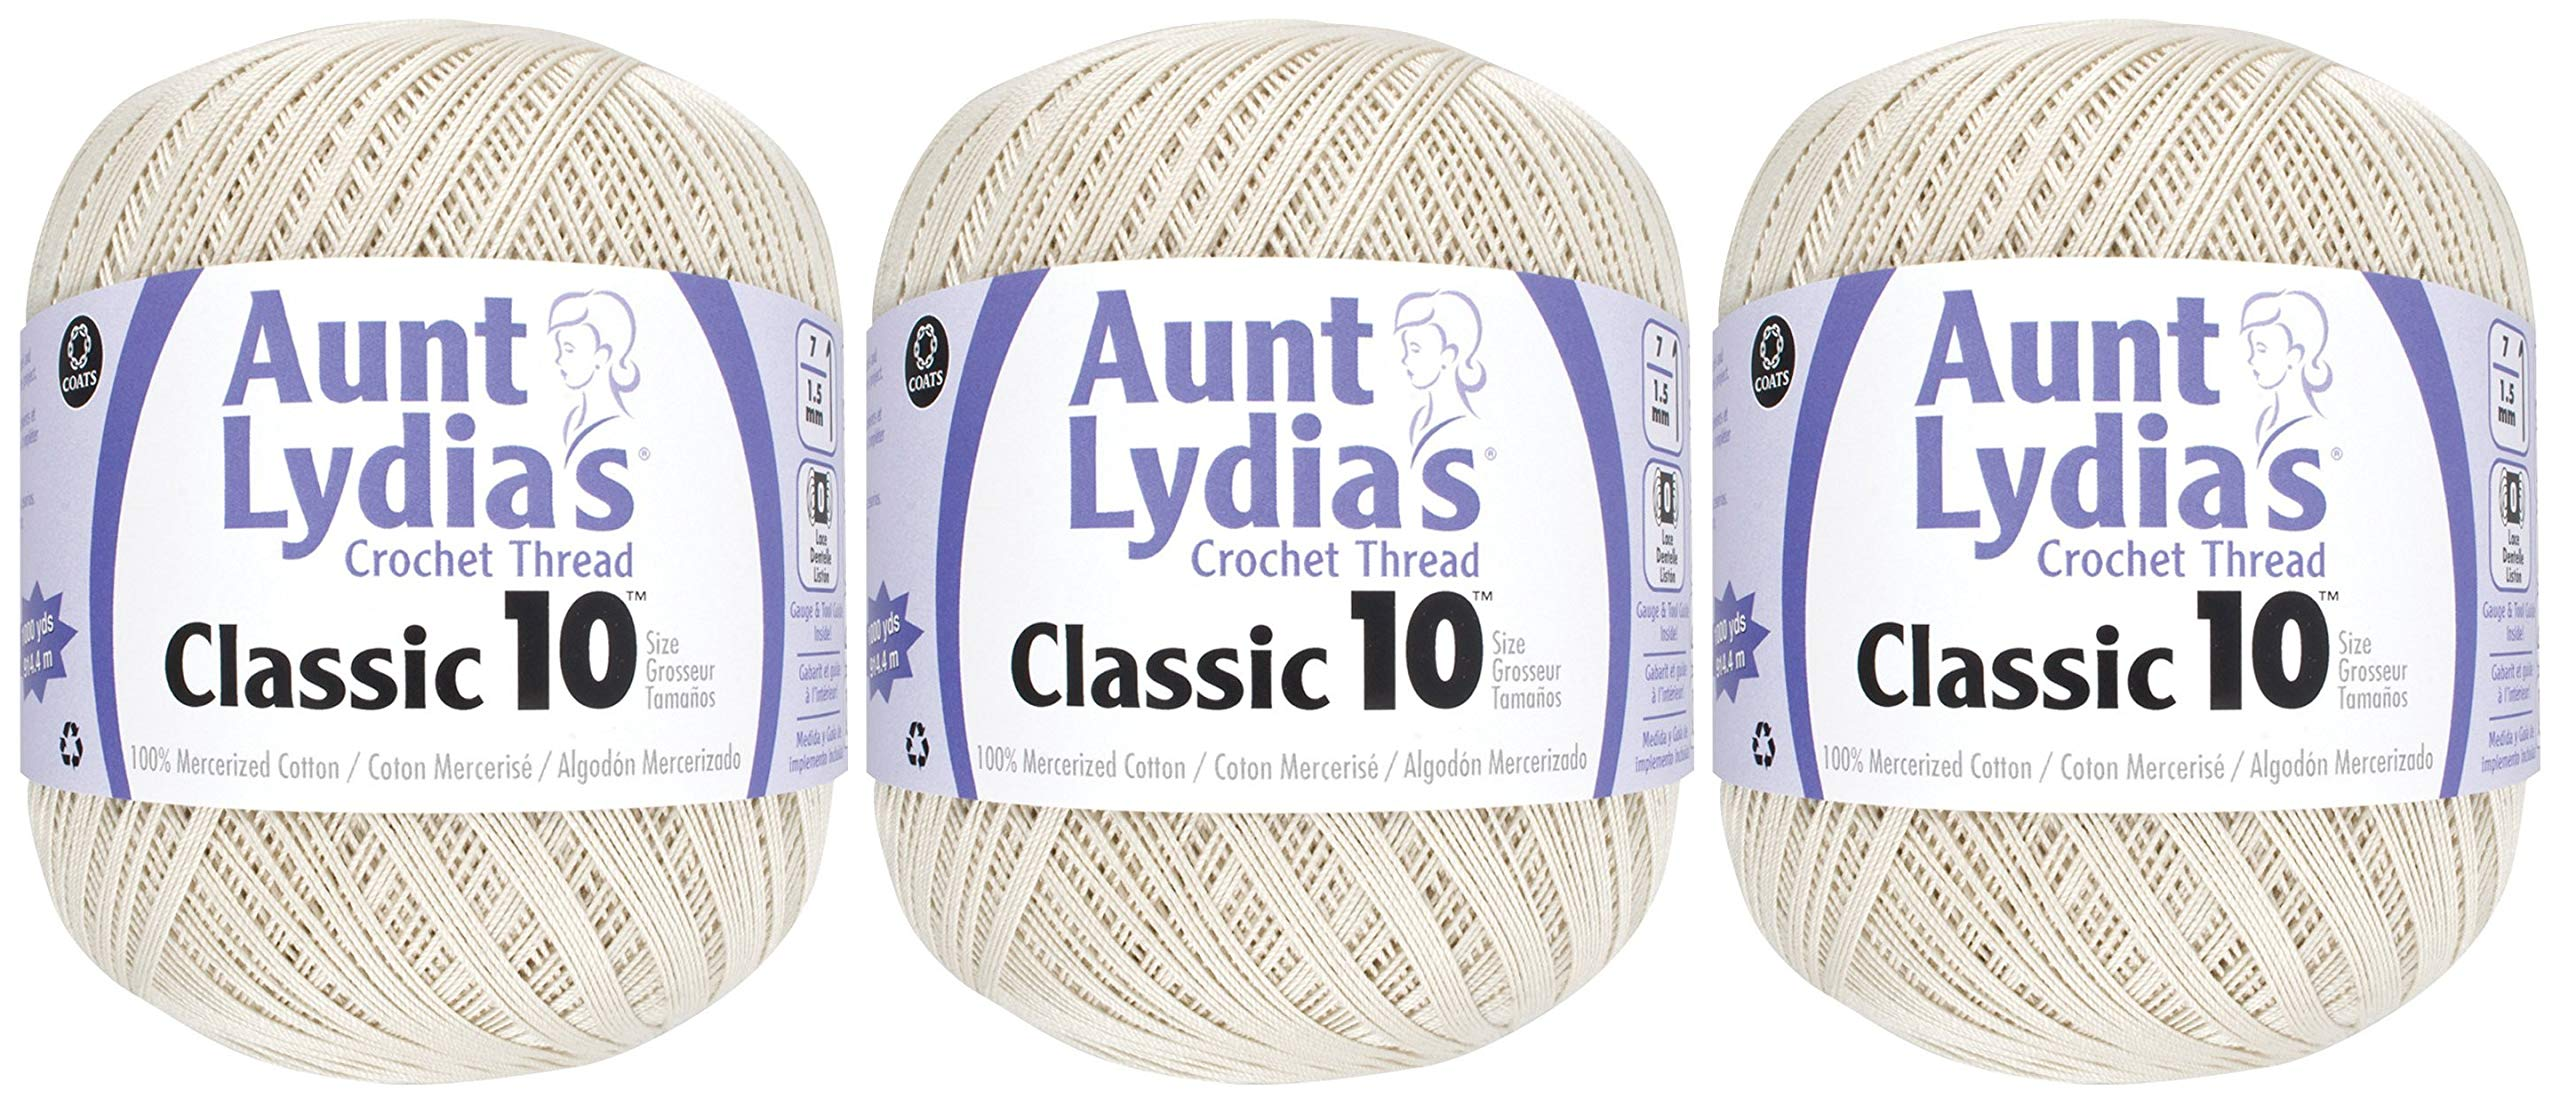 3-Pack - Aunt Lydia's Classic Crochet Thread - Natural - Size 10 Value Pack - 1000 Yards Each